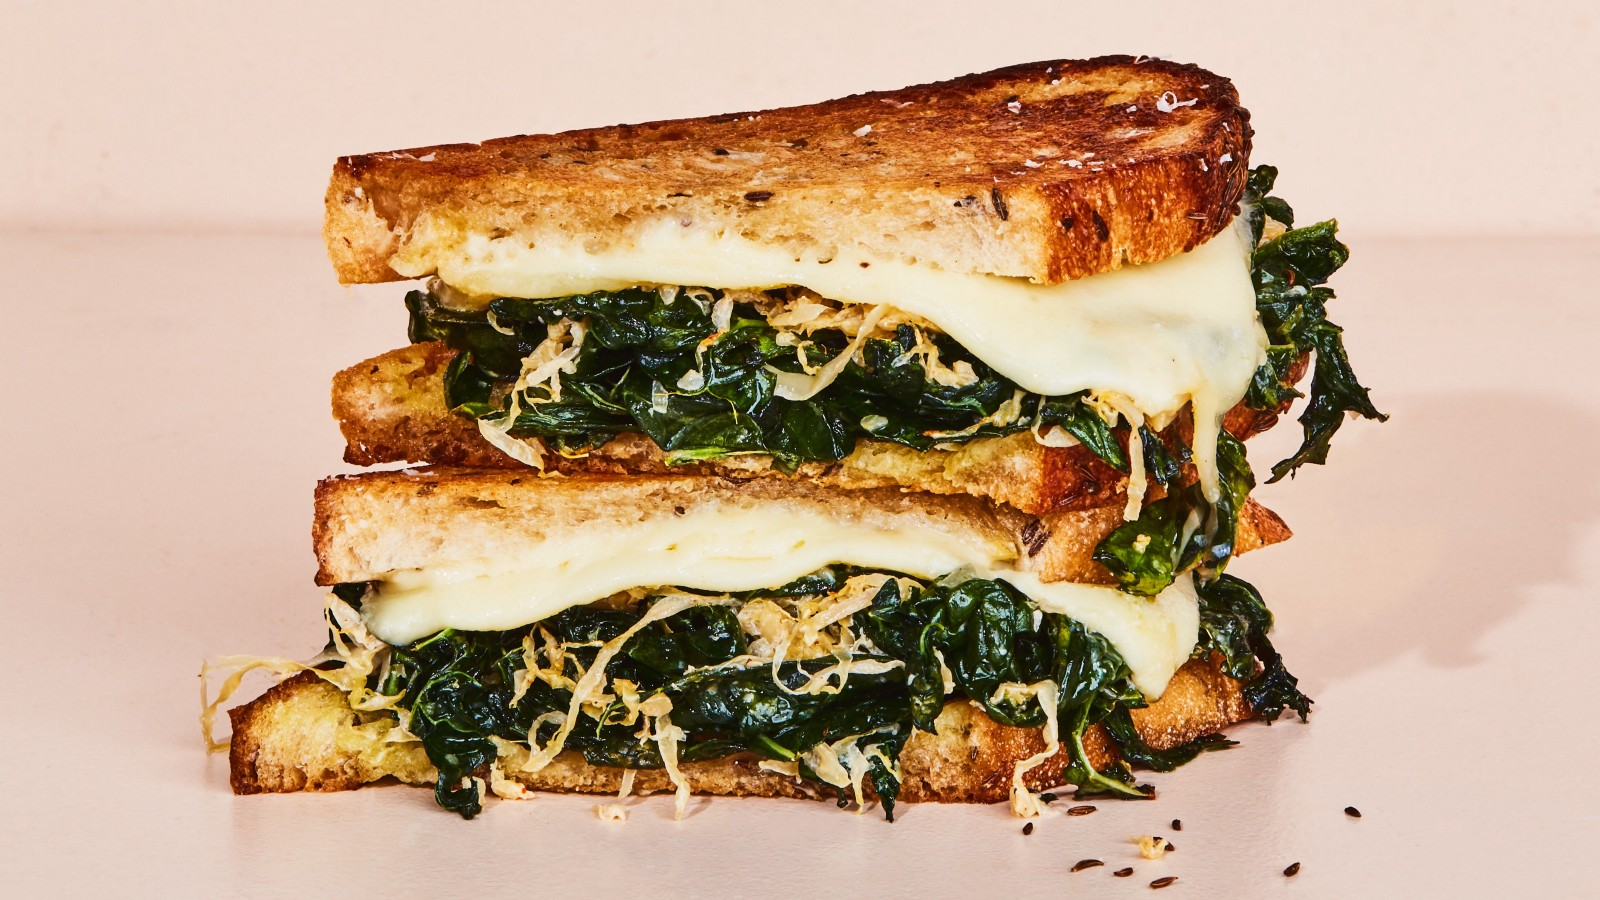 Kale Reuben from Bon Appetit. Toasted sandwich with melted cheese, sauteed kale, and sourkraut.